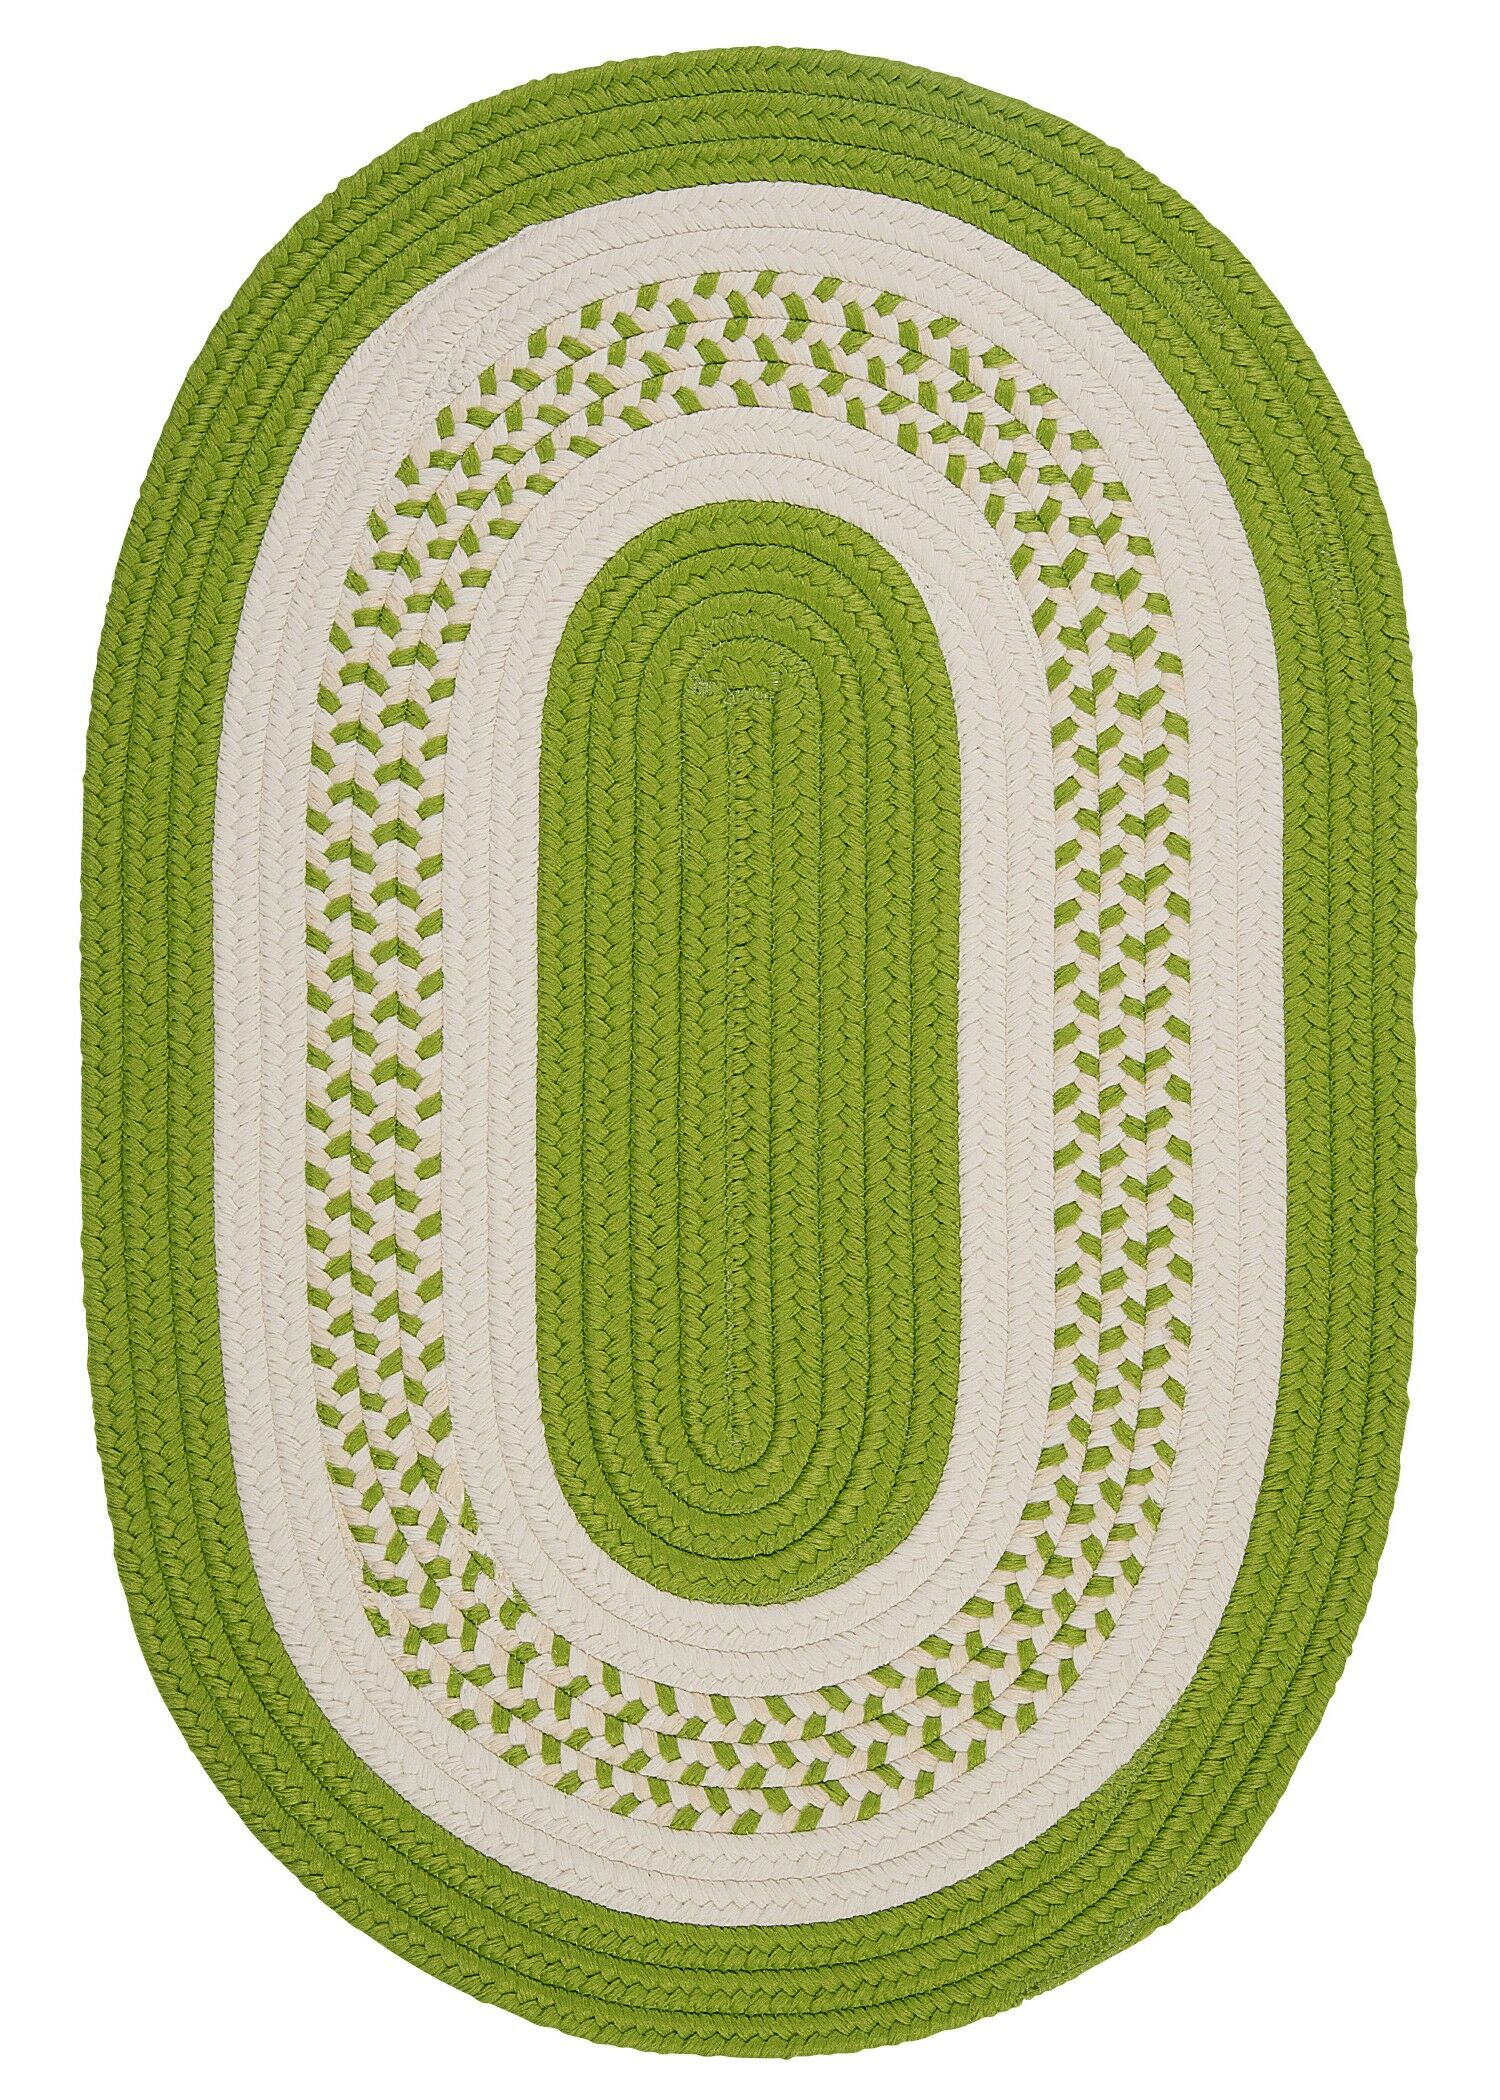 Rockport Bright Green Indoor/Outdoor Rug Rug Size: Oval 7' x 9'